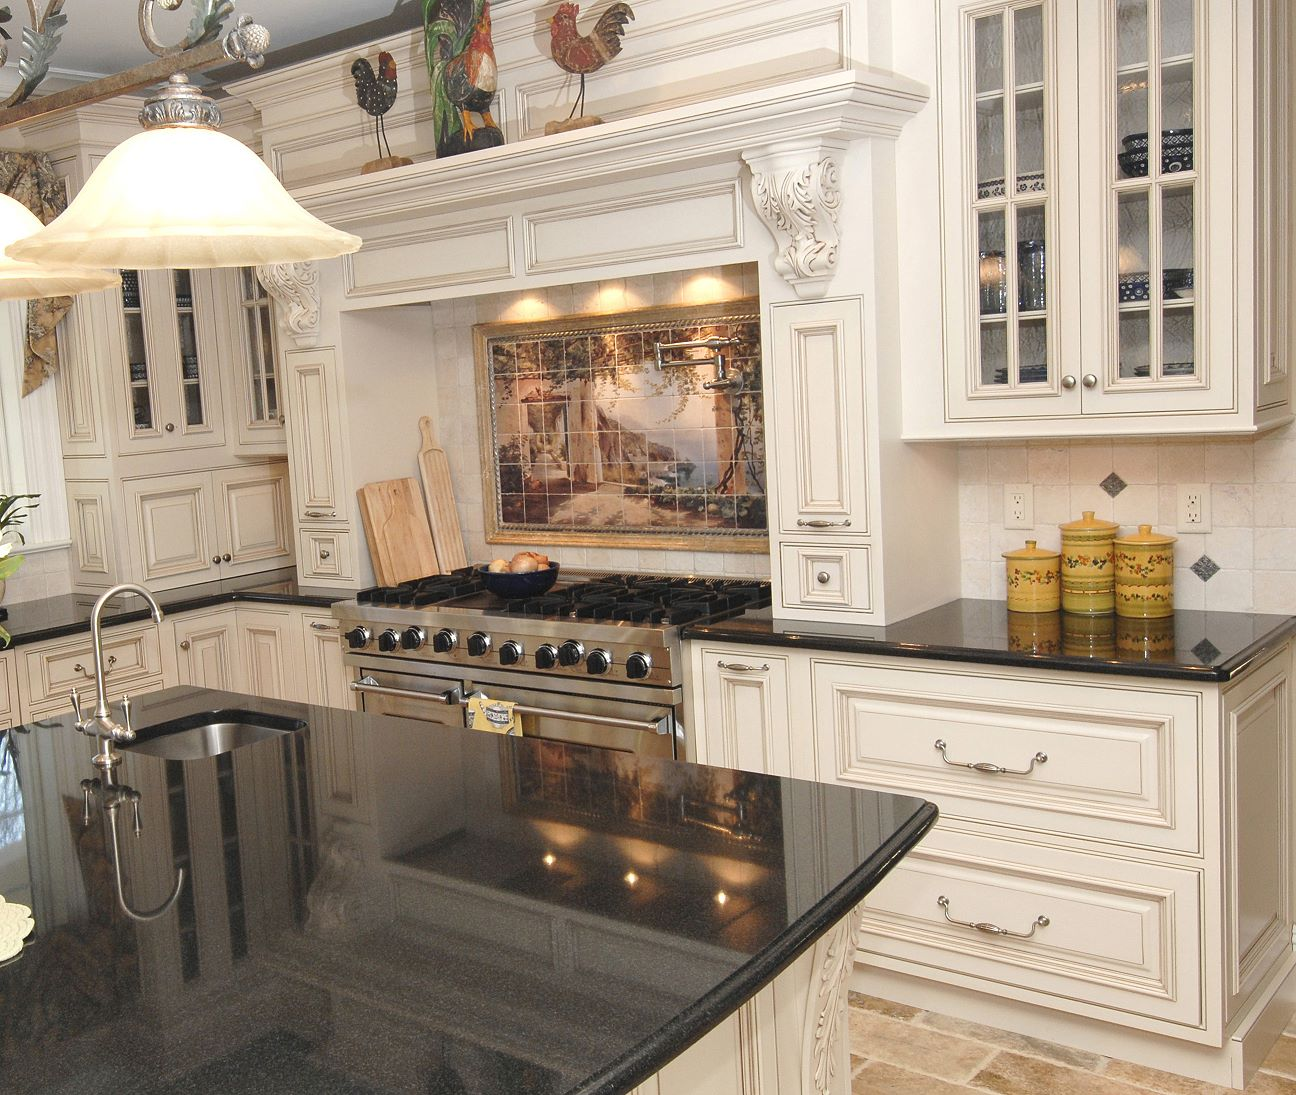 Royal Kitchen Design: 25 TRADITIONAL KITCHEN DESIGNS FOR A ROYAL LOOK